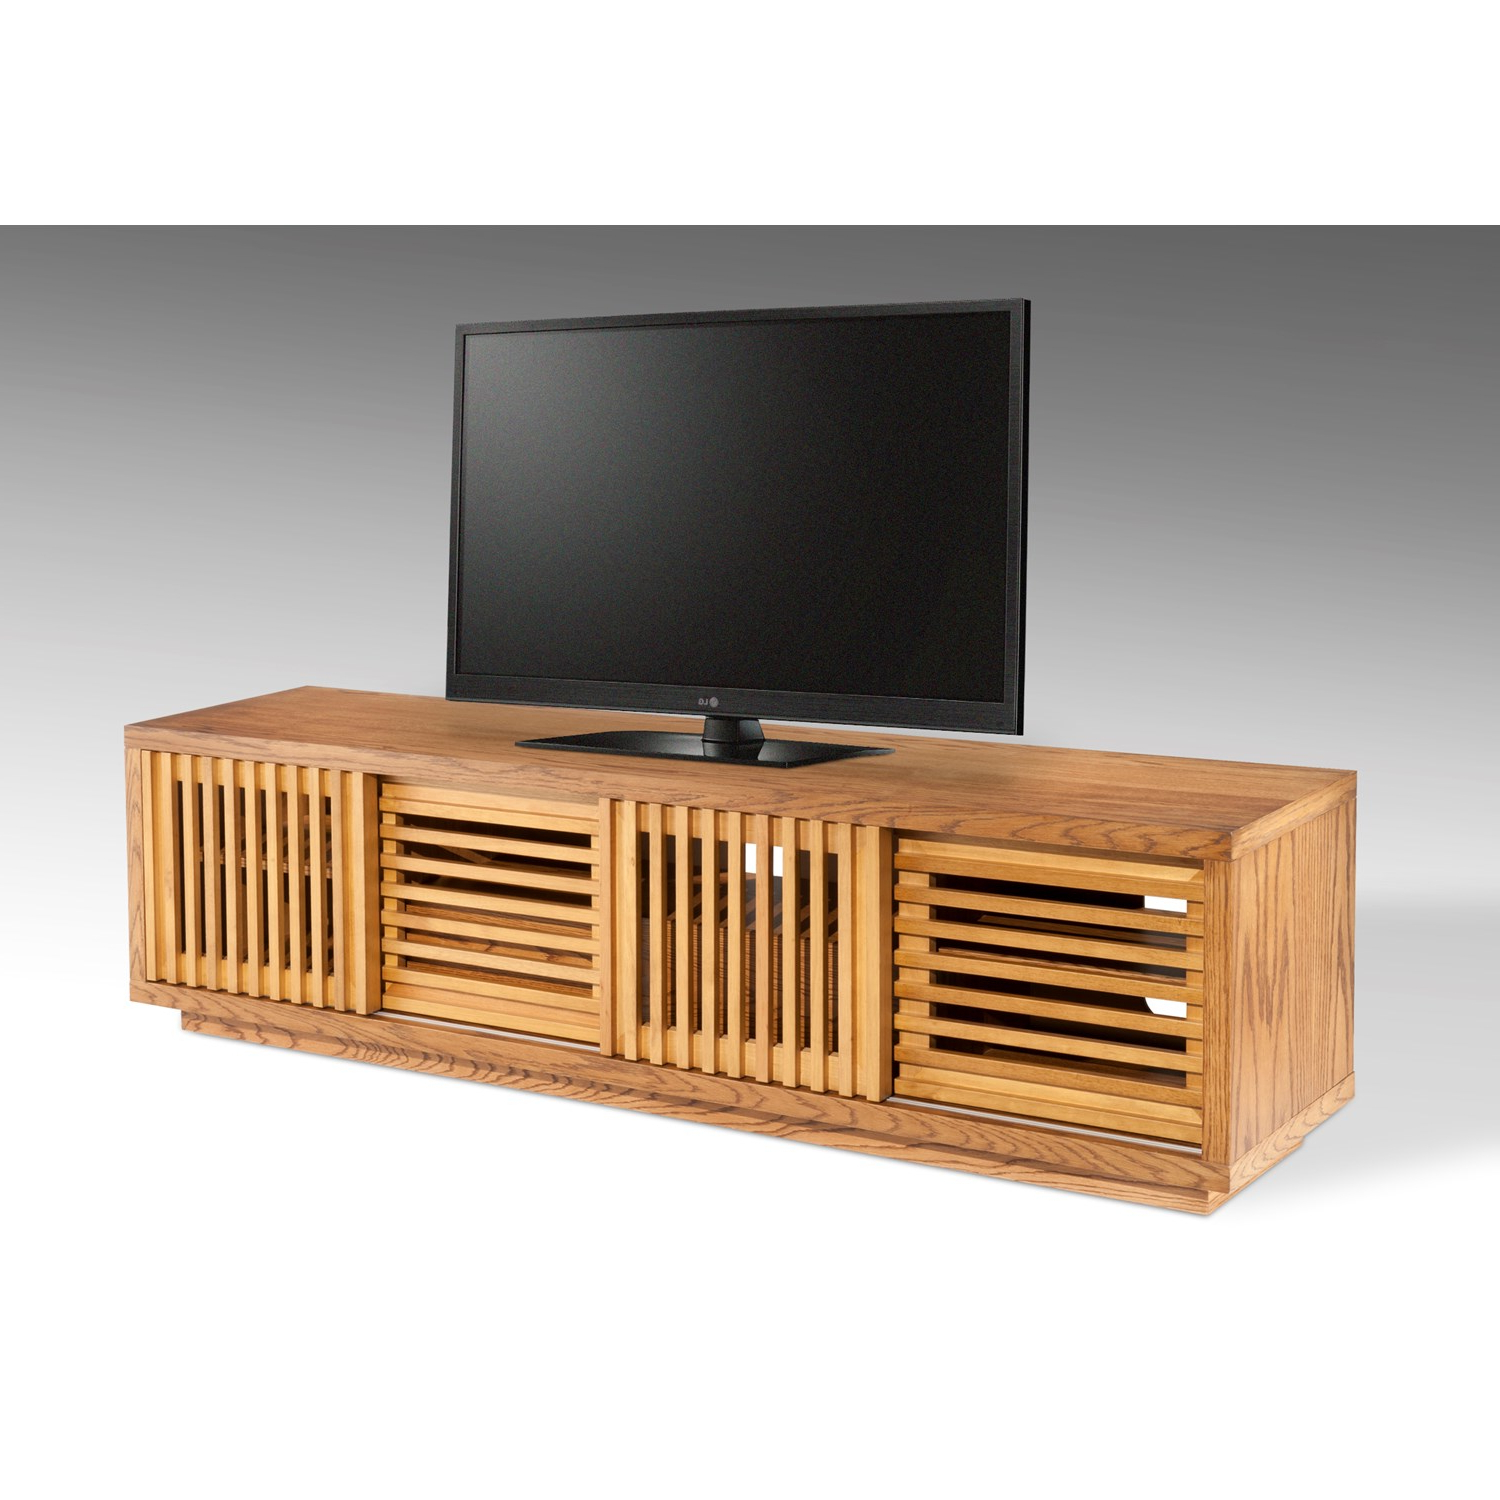 "2017 Honey Oak Tv Stands In The Simple Stores 81.5"" Designer American White Oak Tv Stand In Warm (Gallery 3 of 20)"